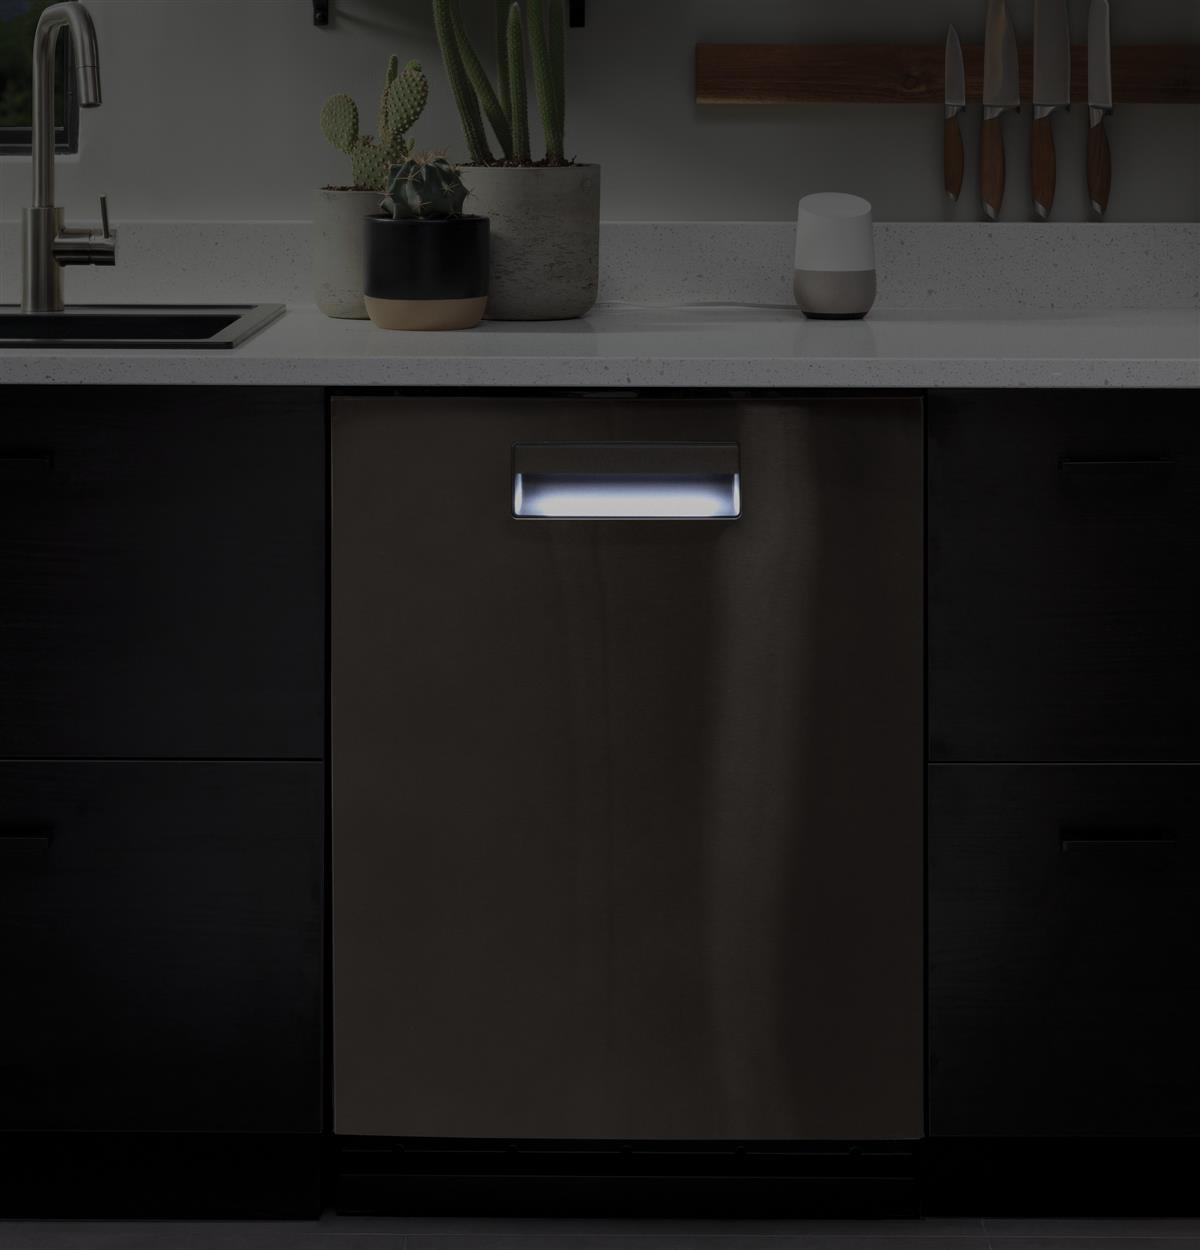 Here's a little kitchen convenience we know you're gonna love: a built-in nightlight in the dishwasher door that creates the perfect setting for late-night snacking